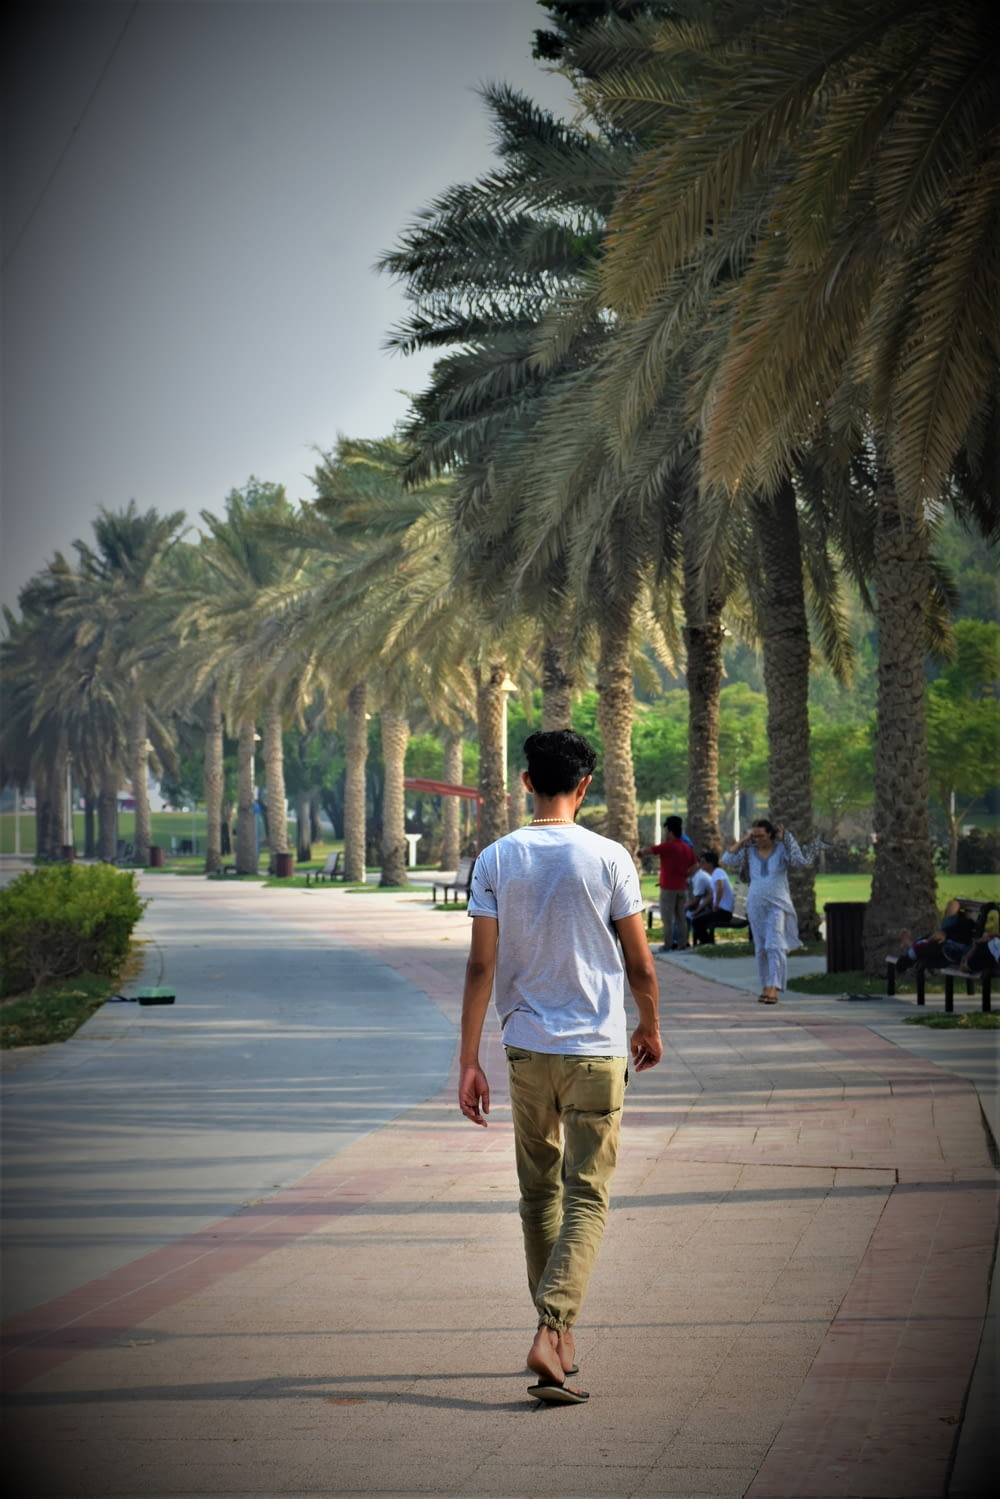 man walking in palm trees lined pathway